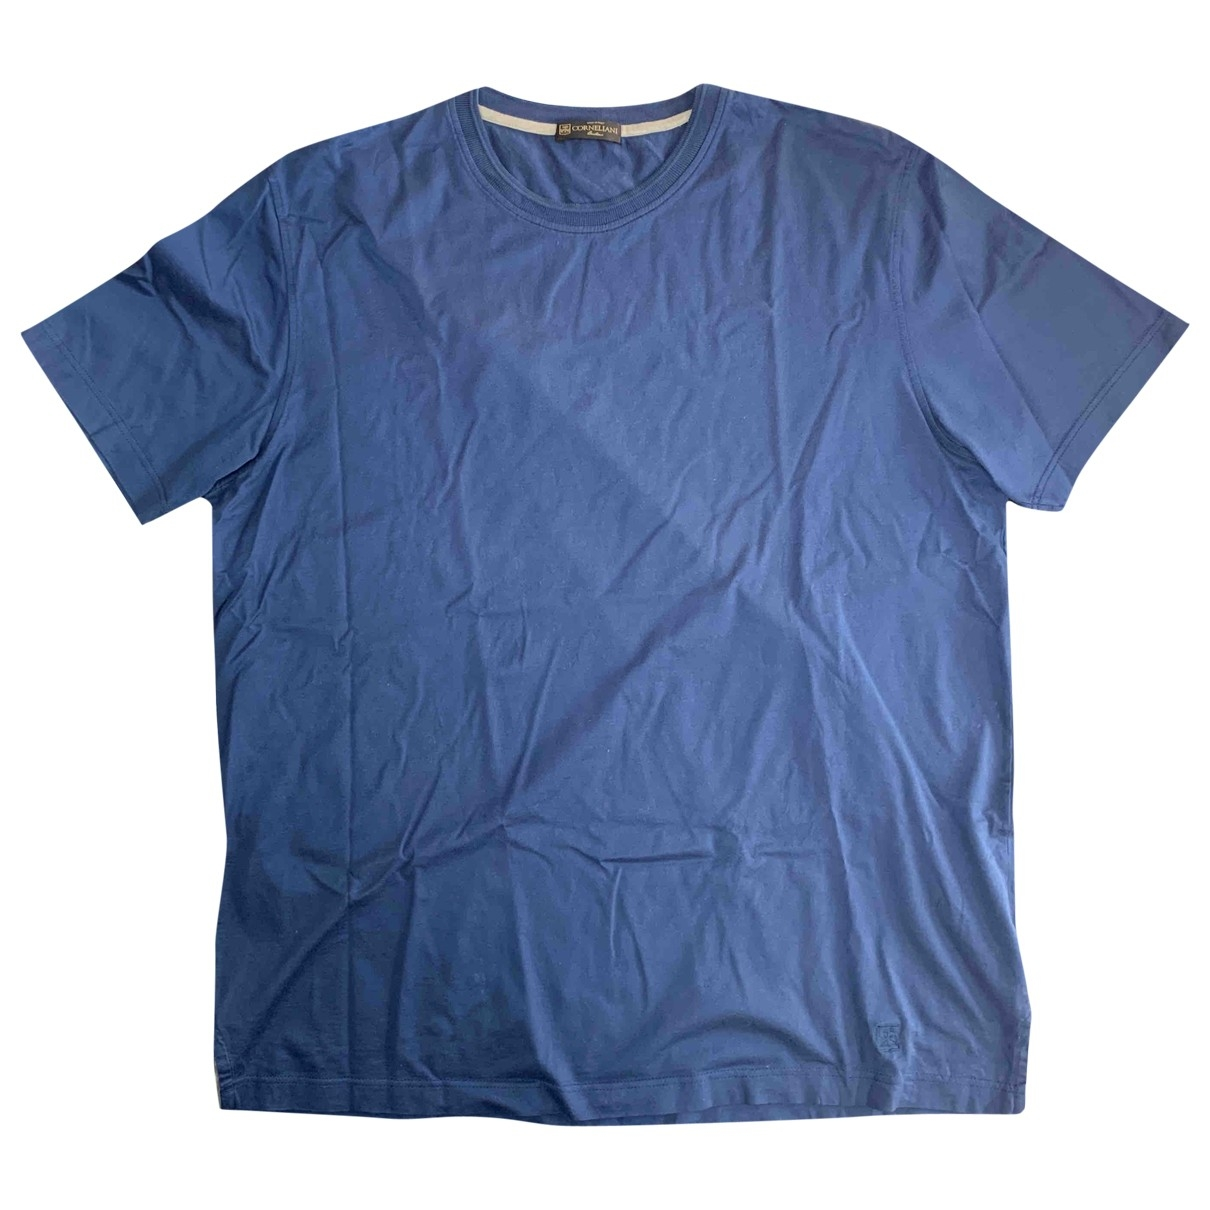 Corneliani \N Blue Cotton T-shirts for Men XXL International